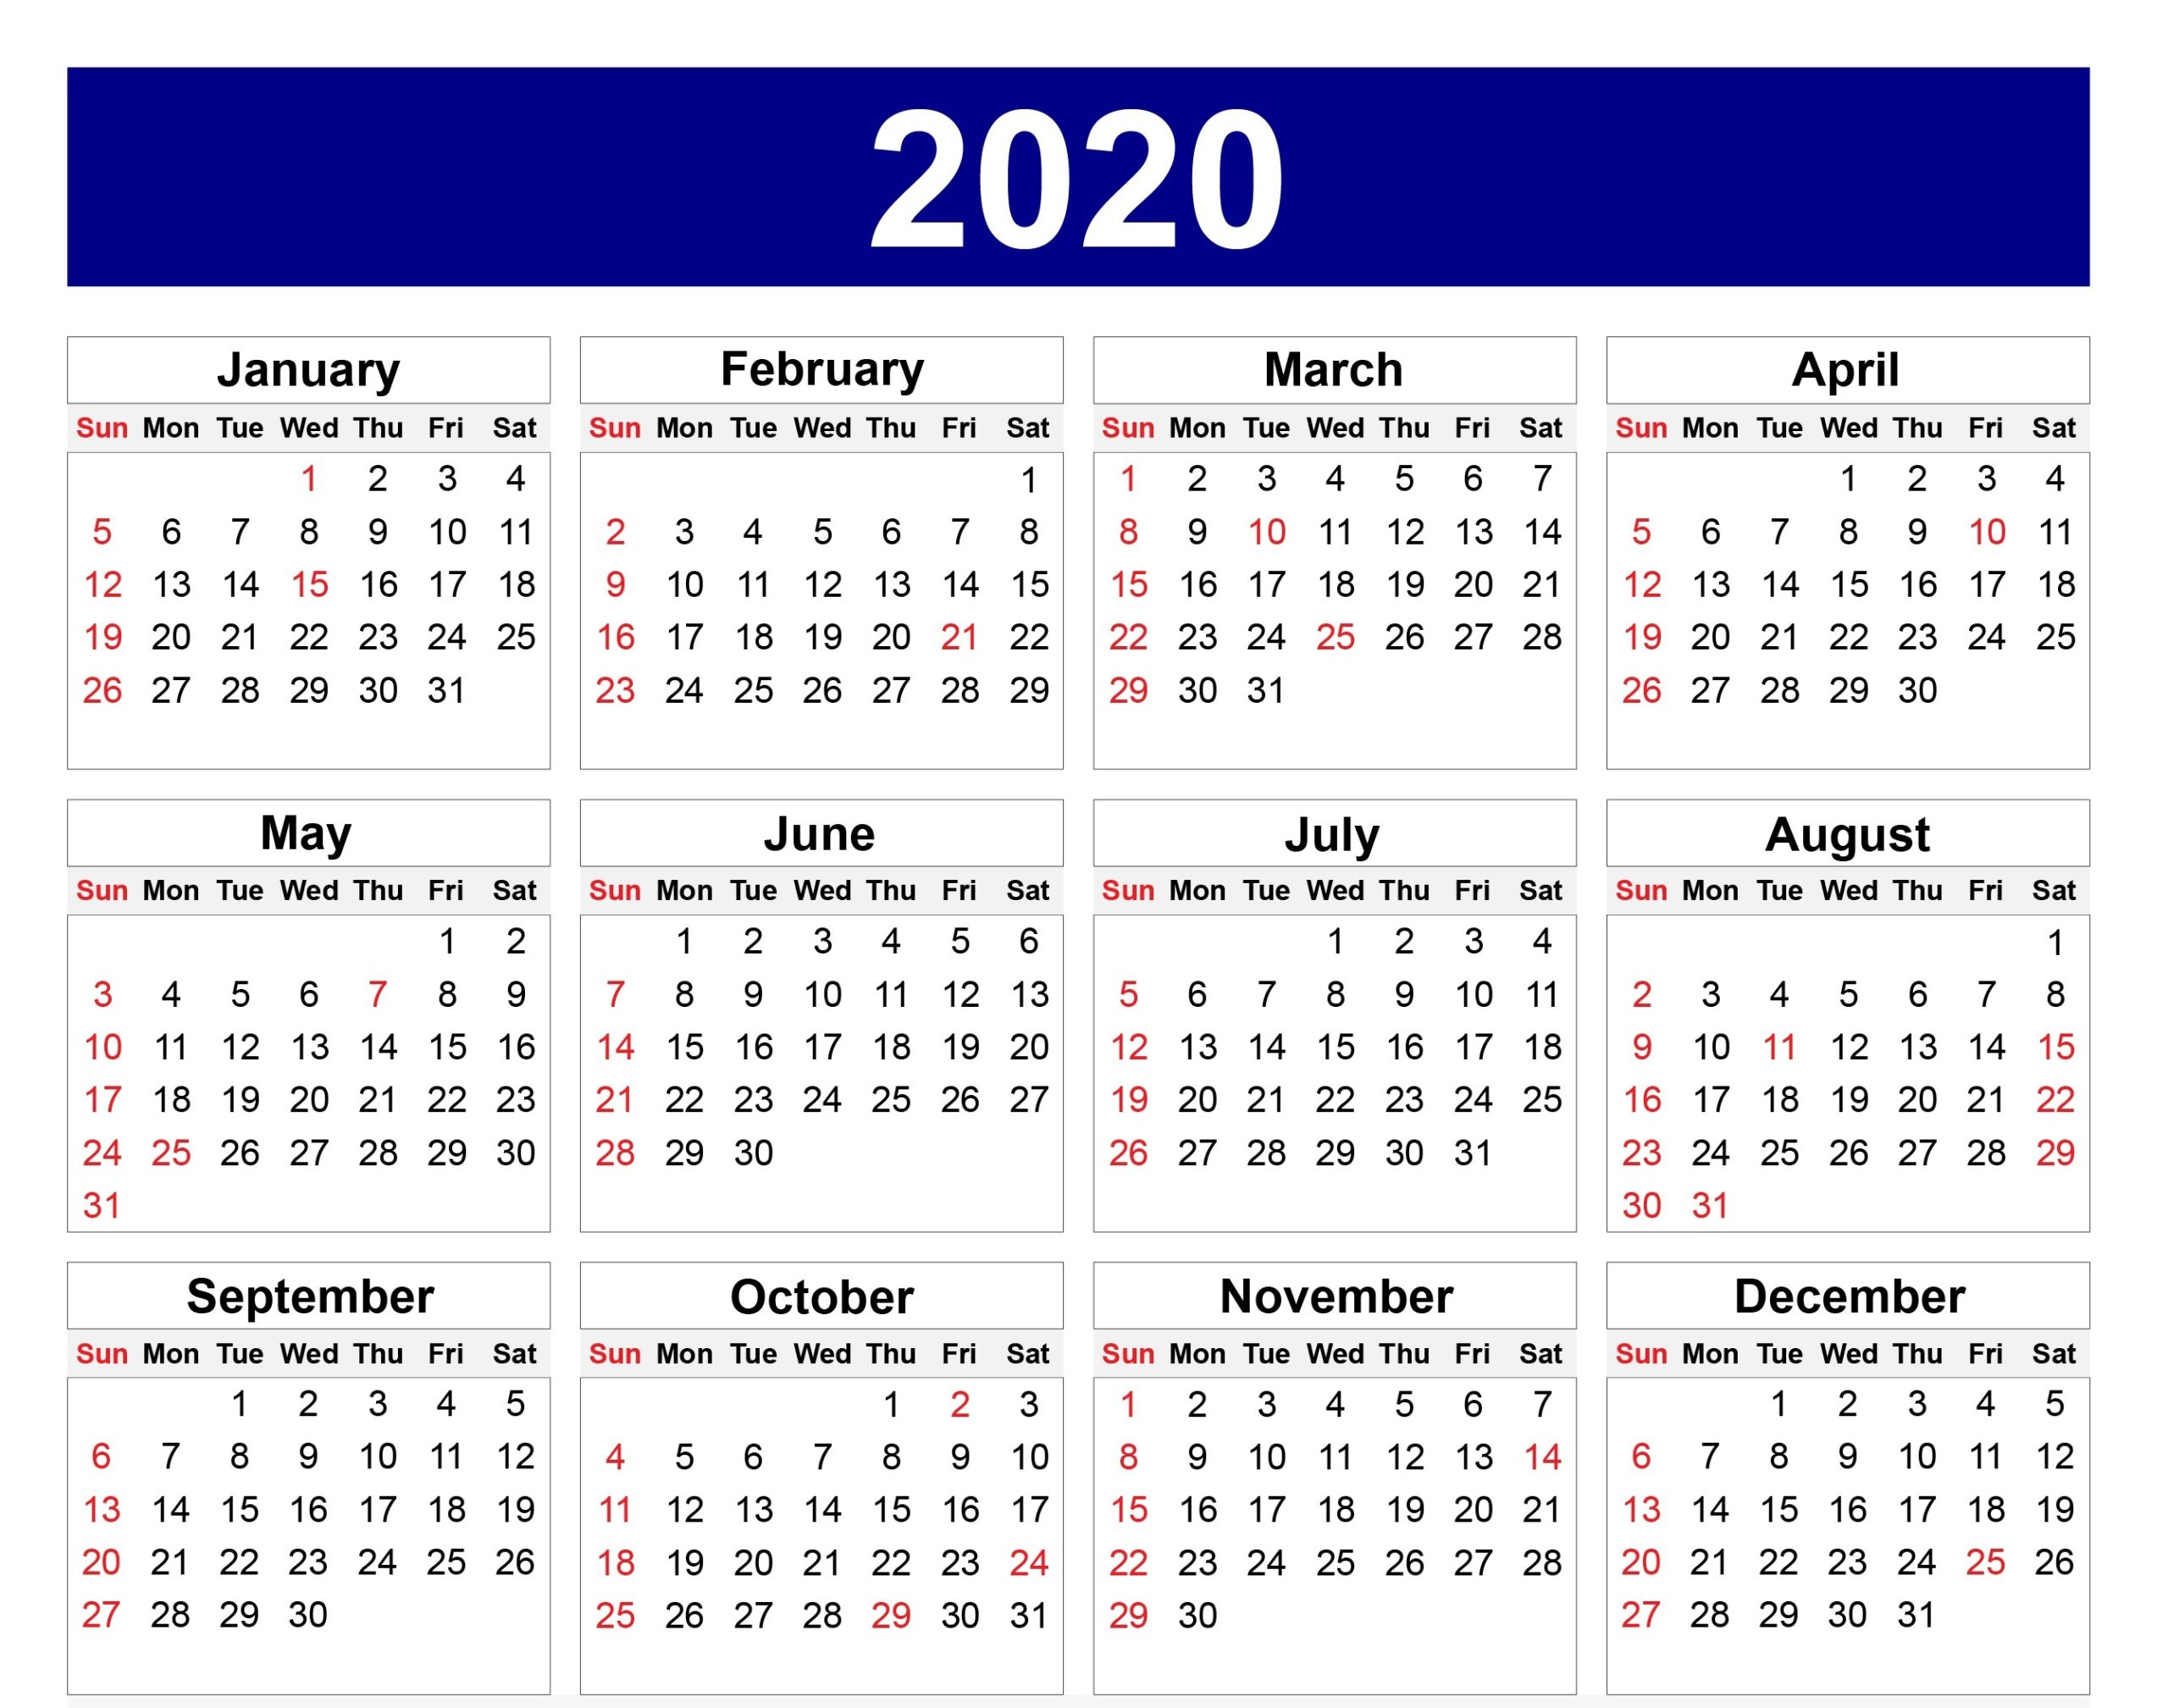 Download 2020 Calendar With Holidays